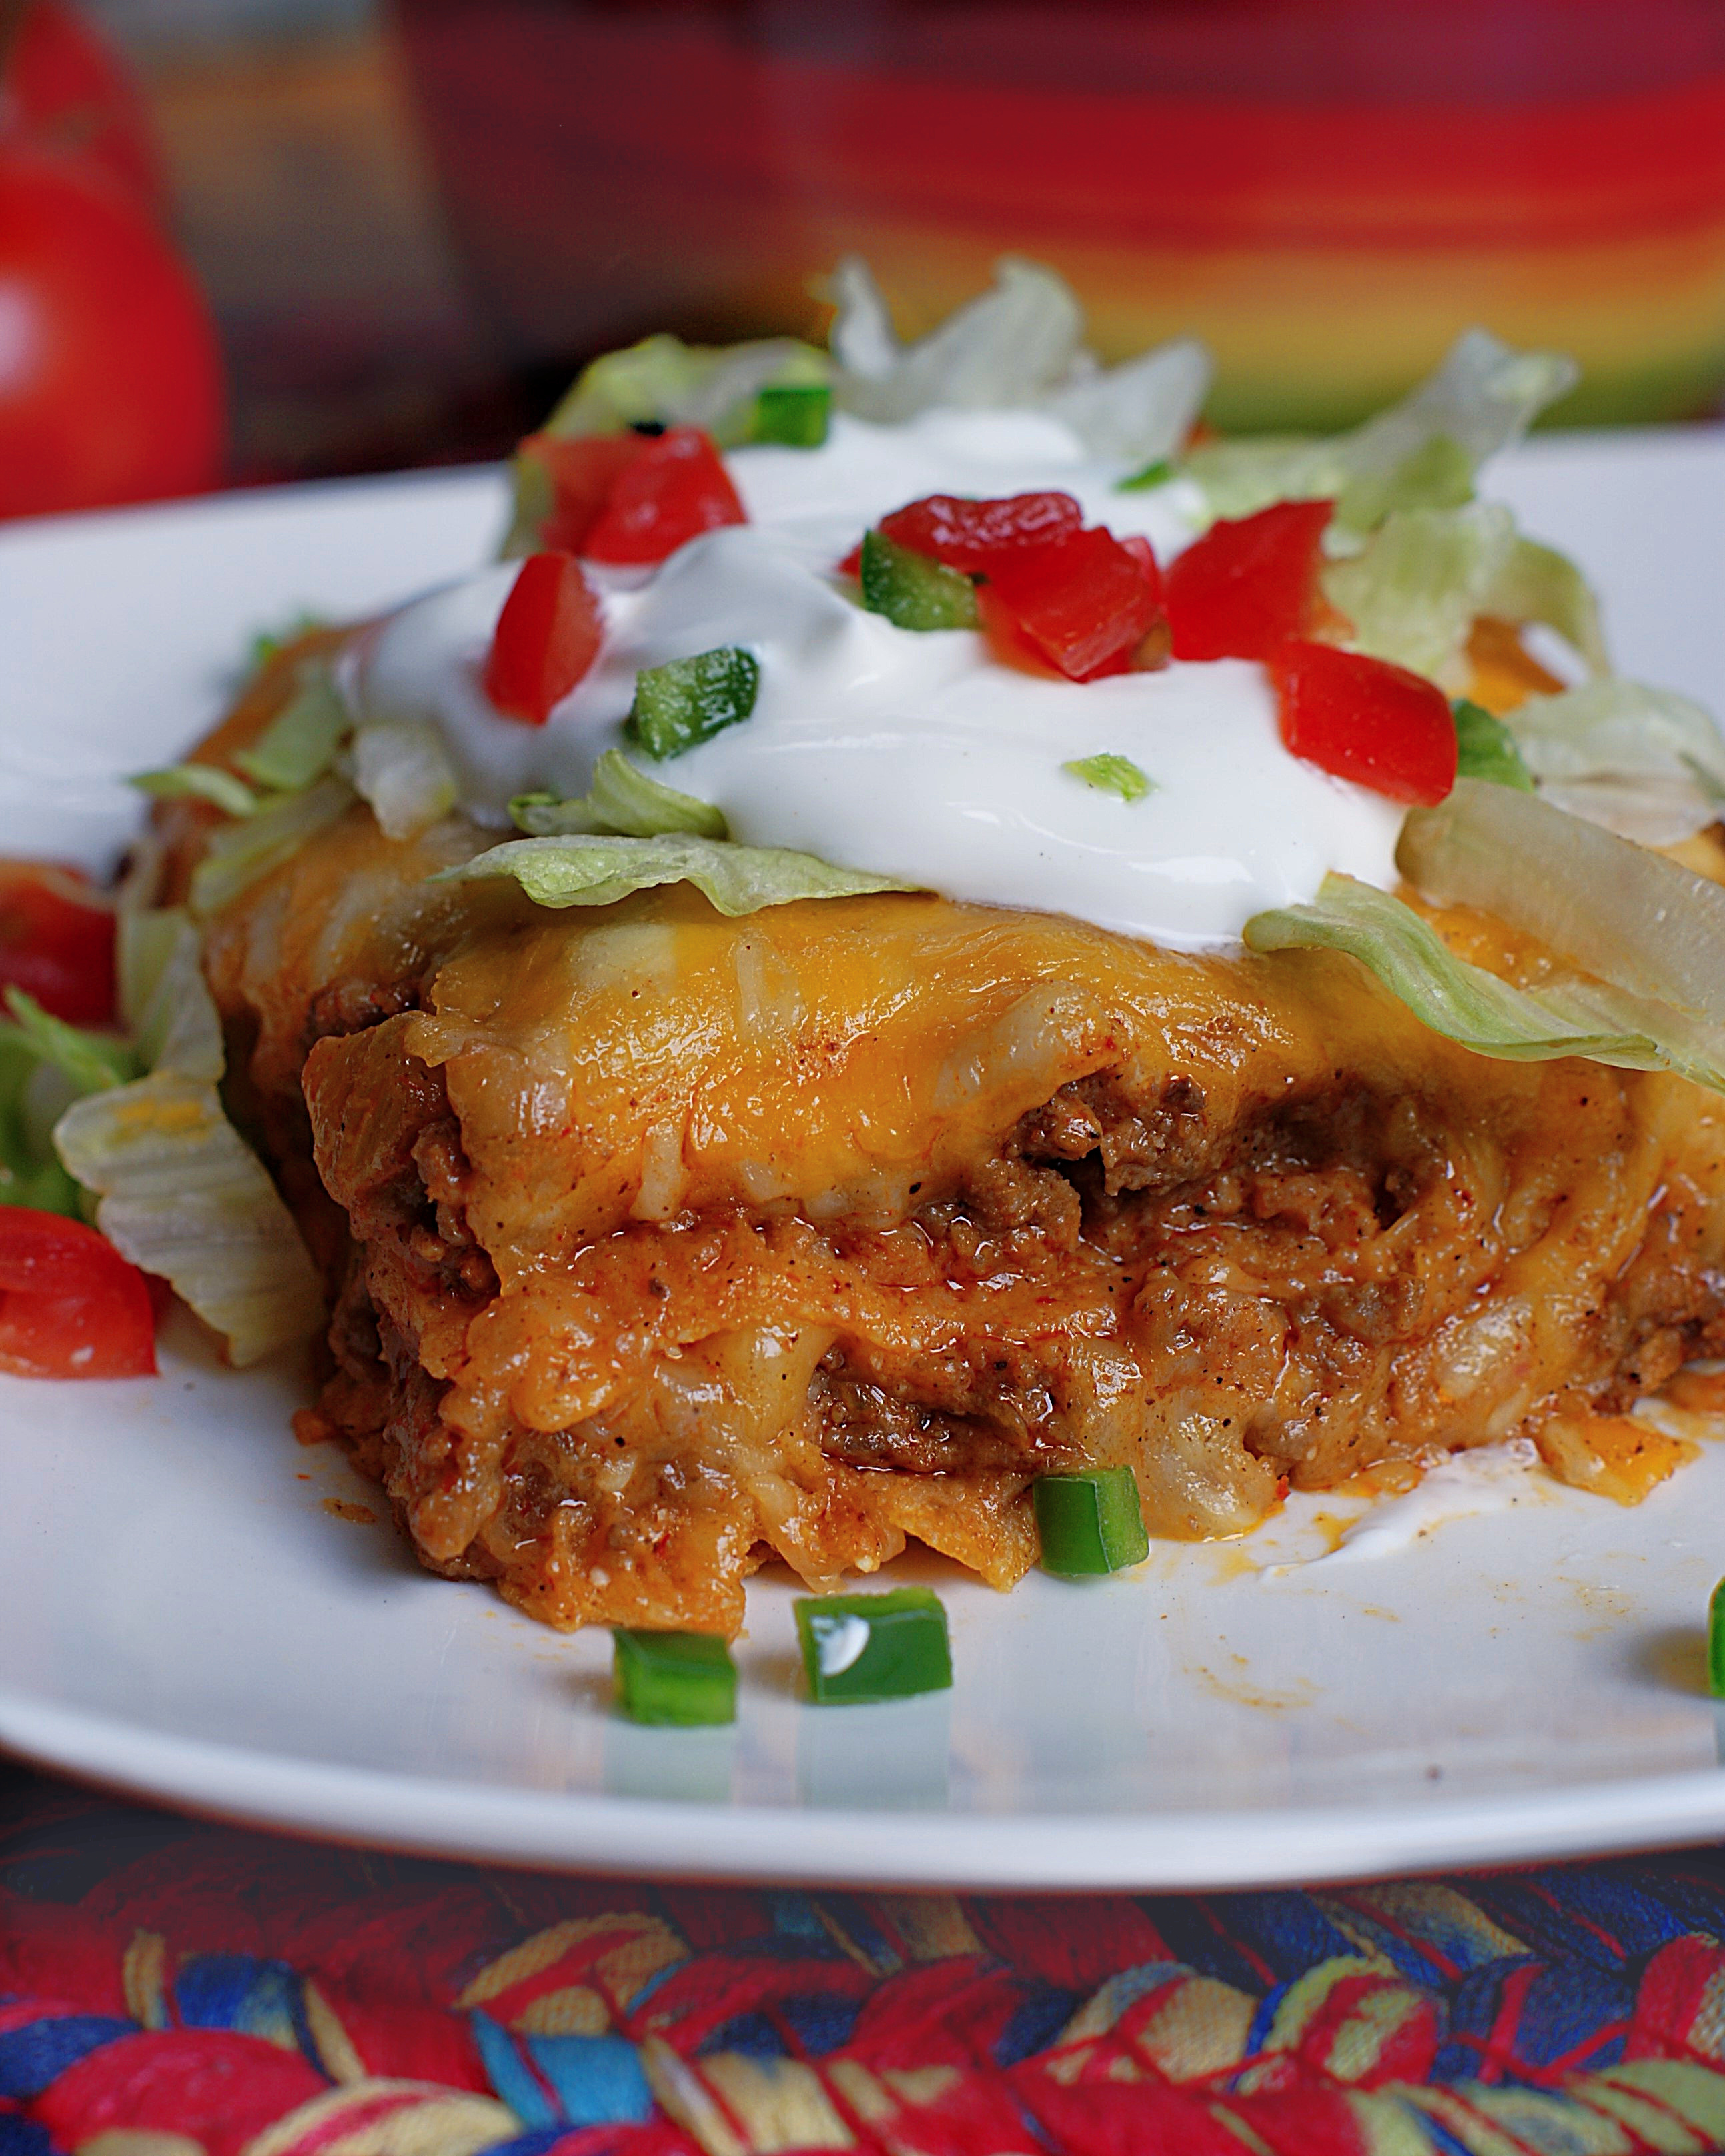 Seasoned beef, corn tostadas, cheese and enchilada sauce layered in a dish.